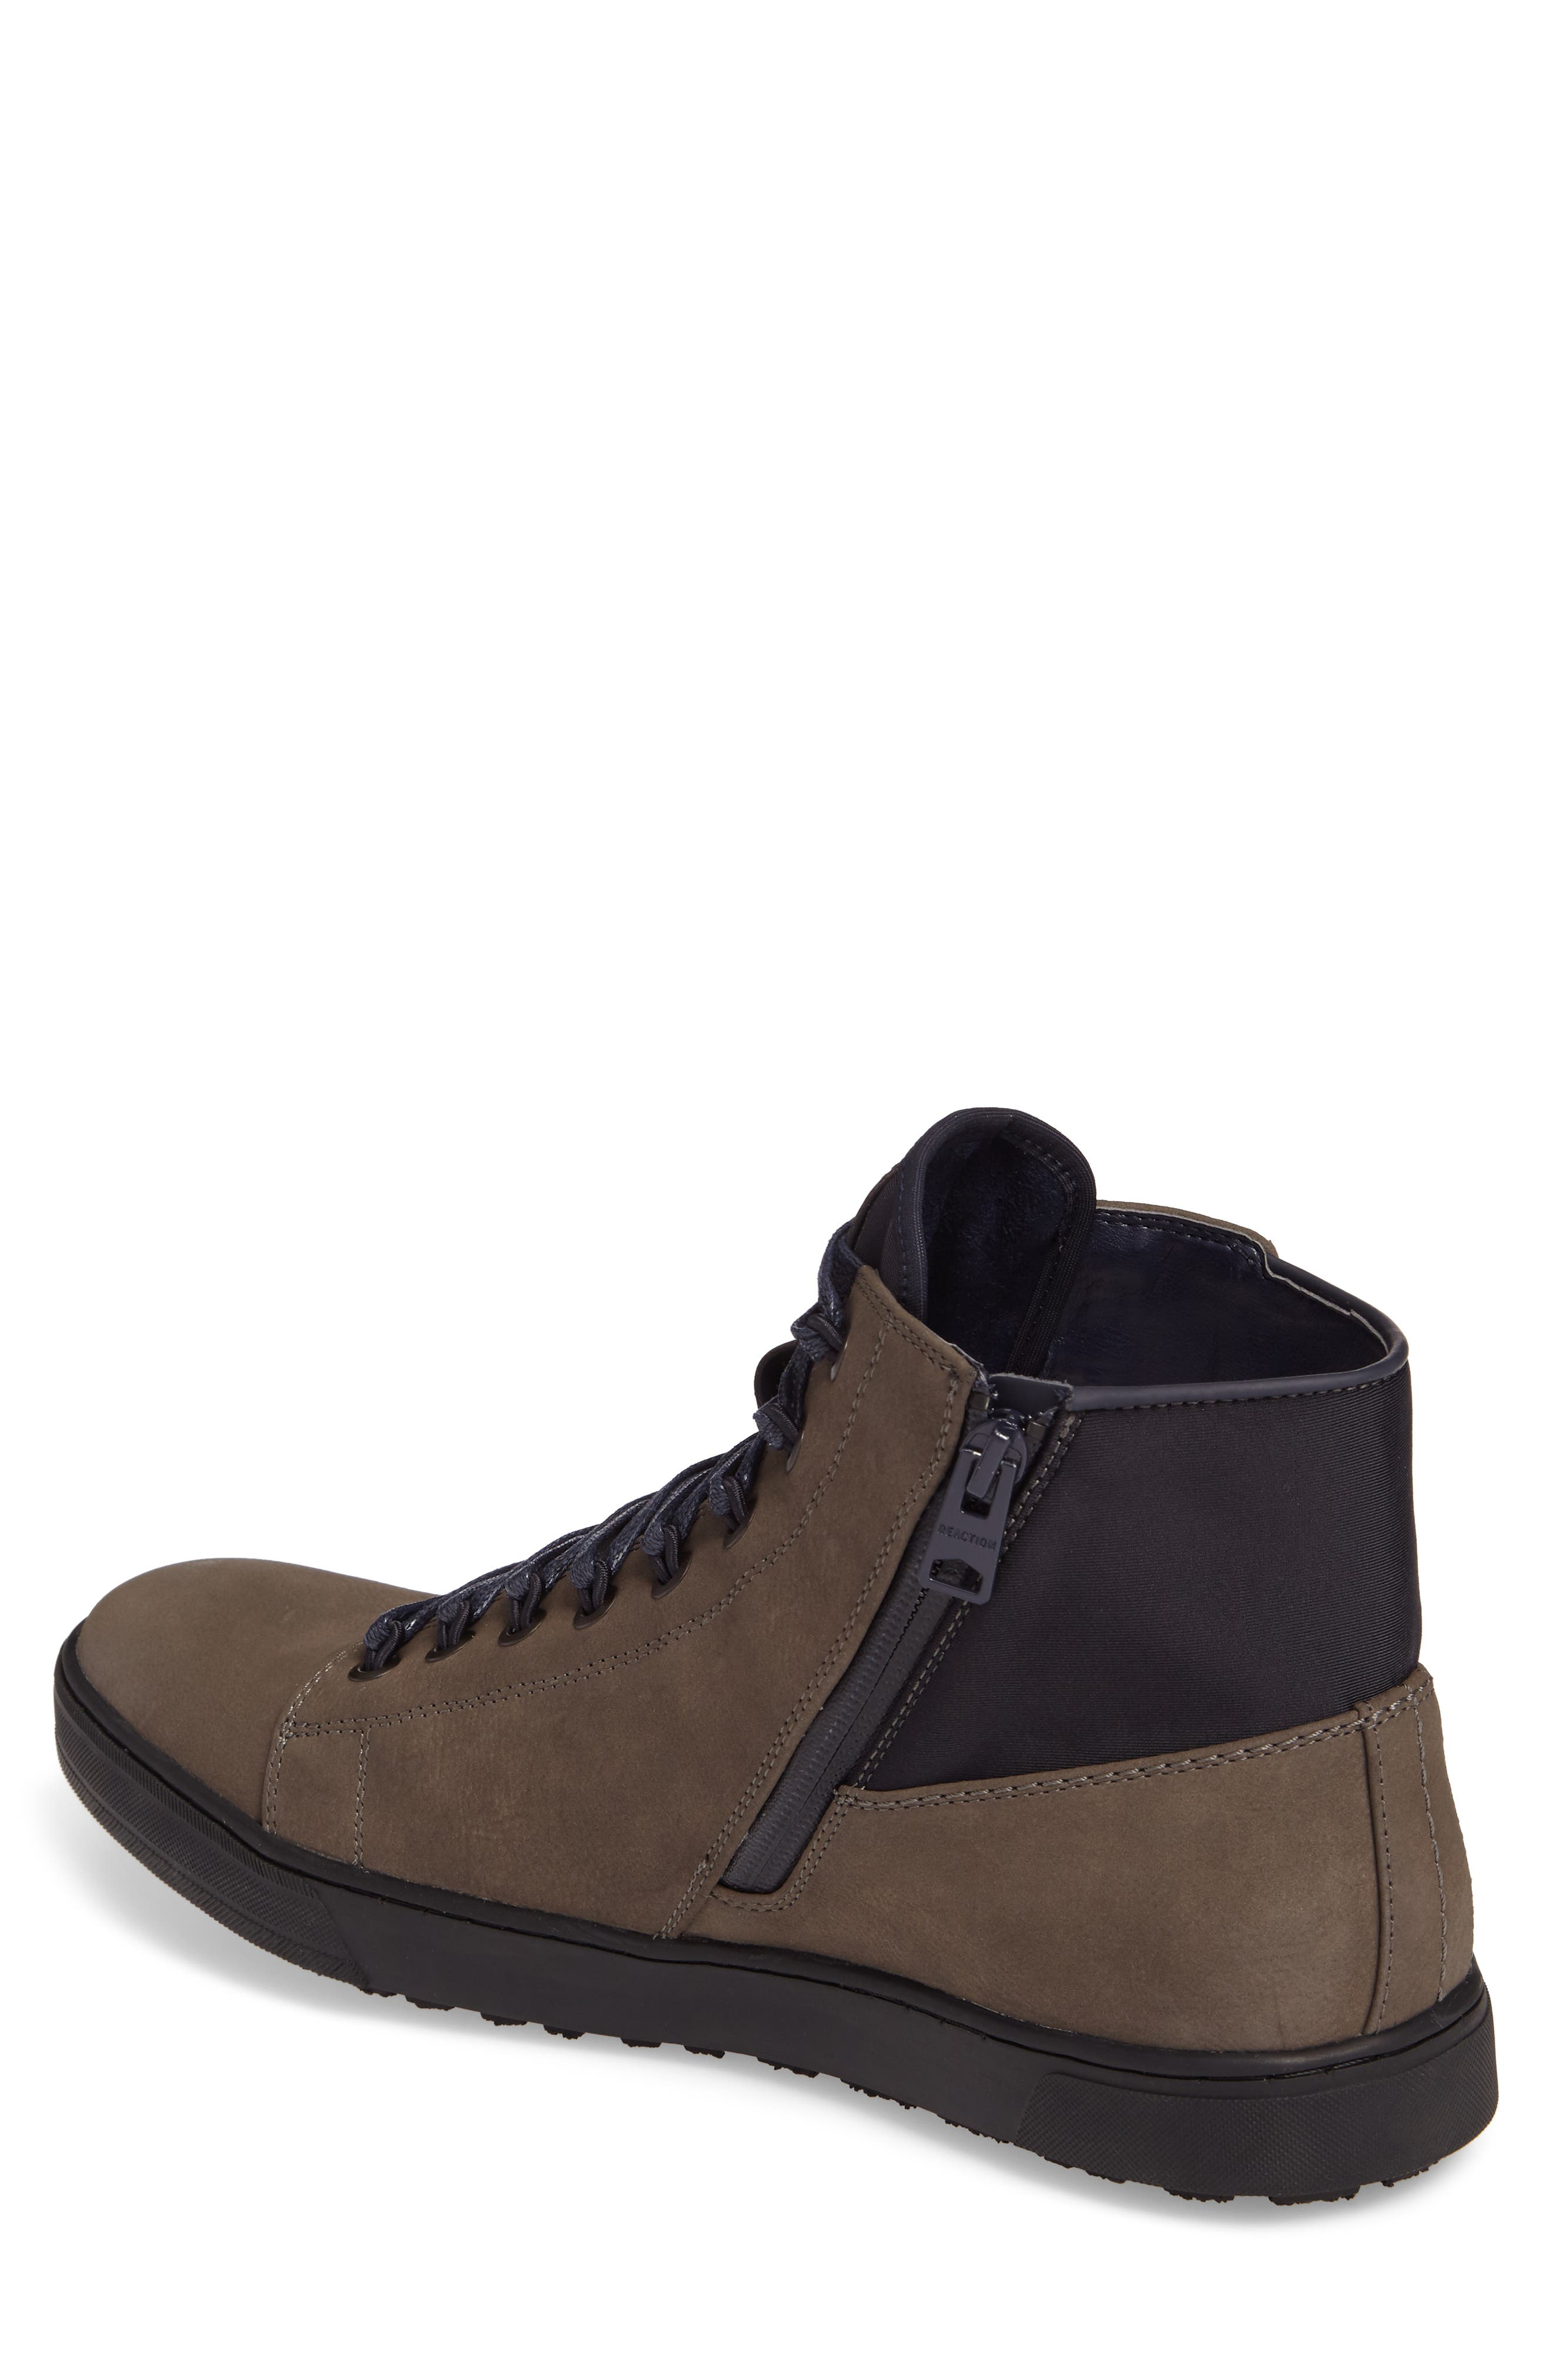 Alternate Image 2  - Kenneth Cole Reaction High-Top Sneaker (Men)